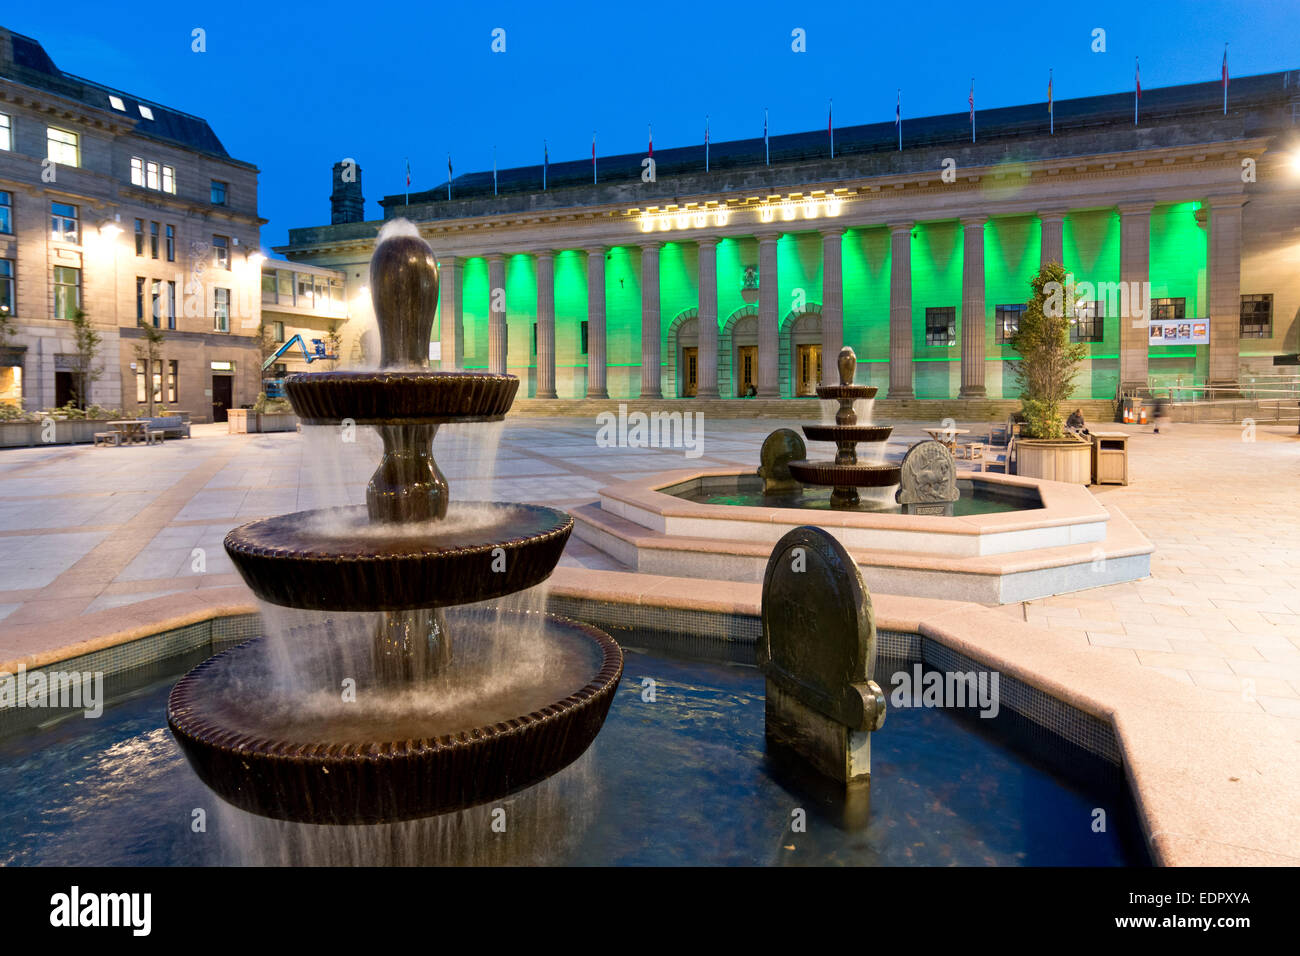 caird hall concert auditorium by james key dundee - Stock Image